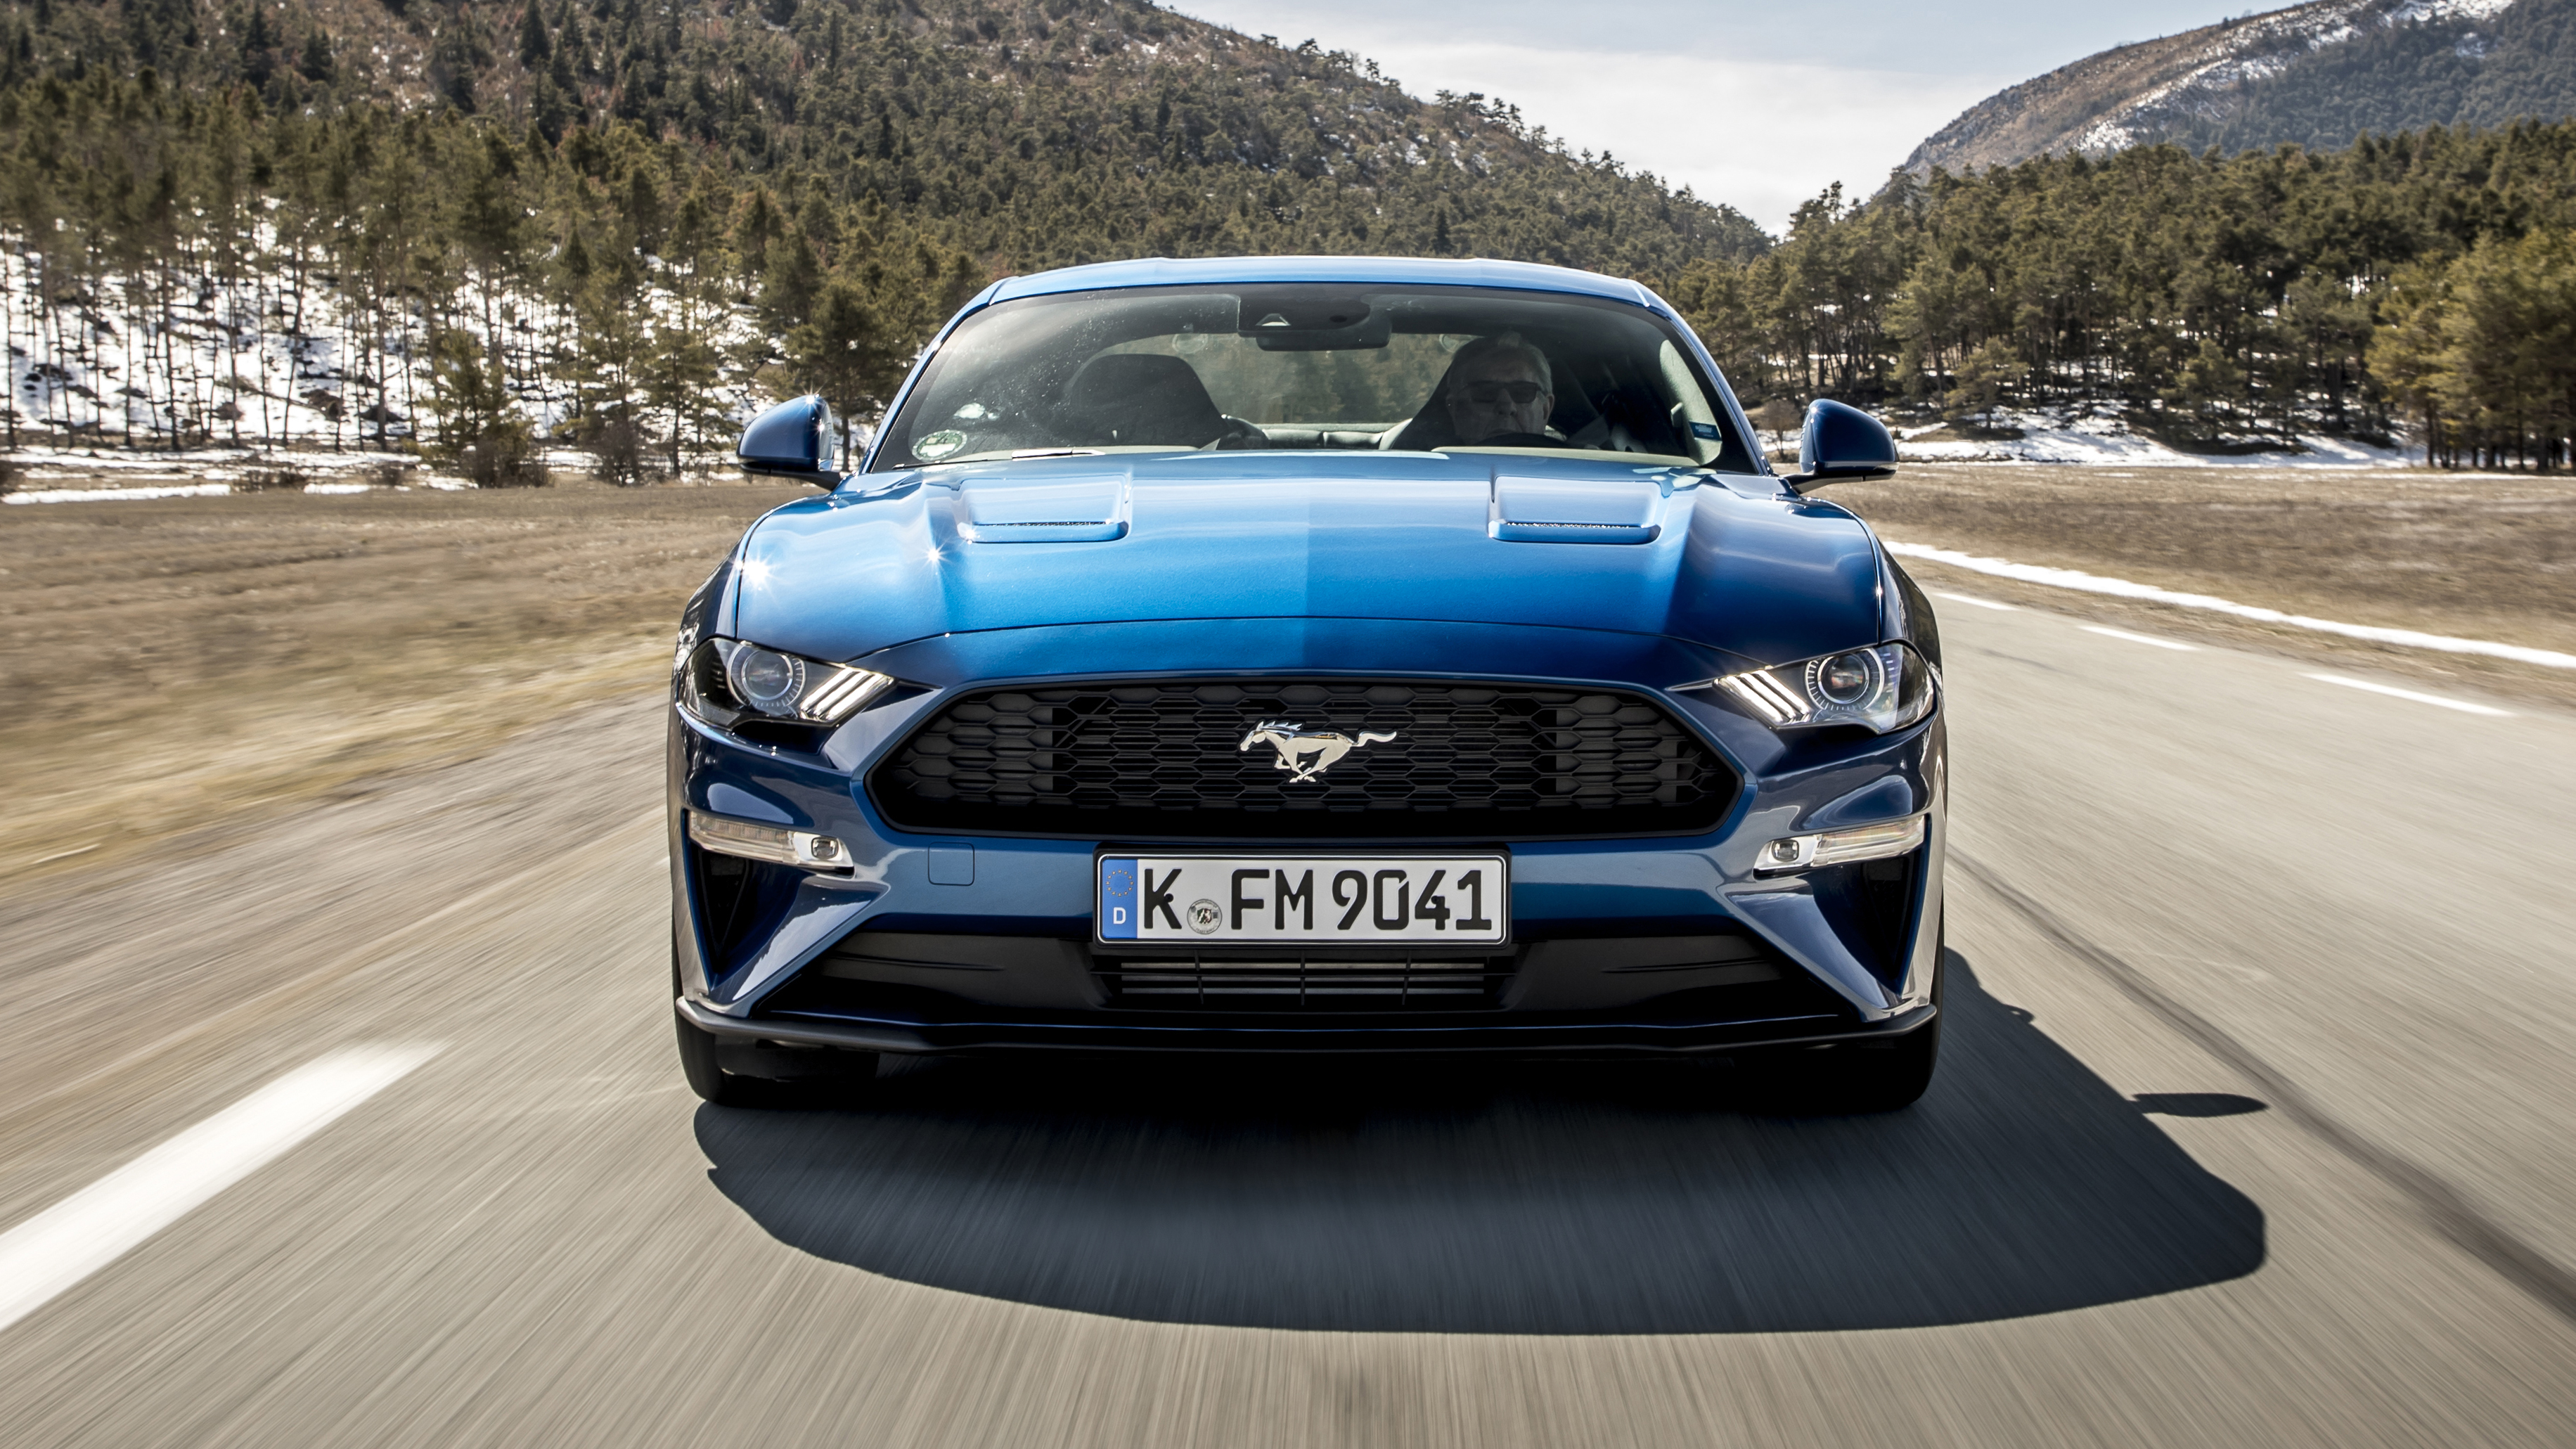 Lightning Blue Mustang >> 2018 Ford Mustang Review | Top Gear